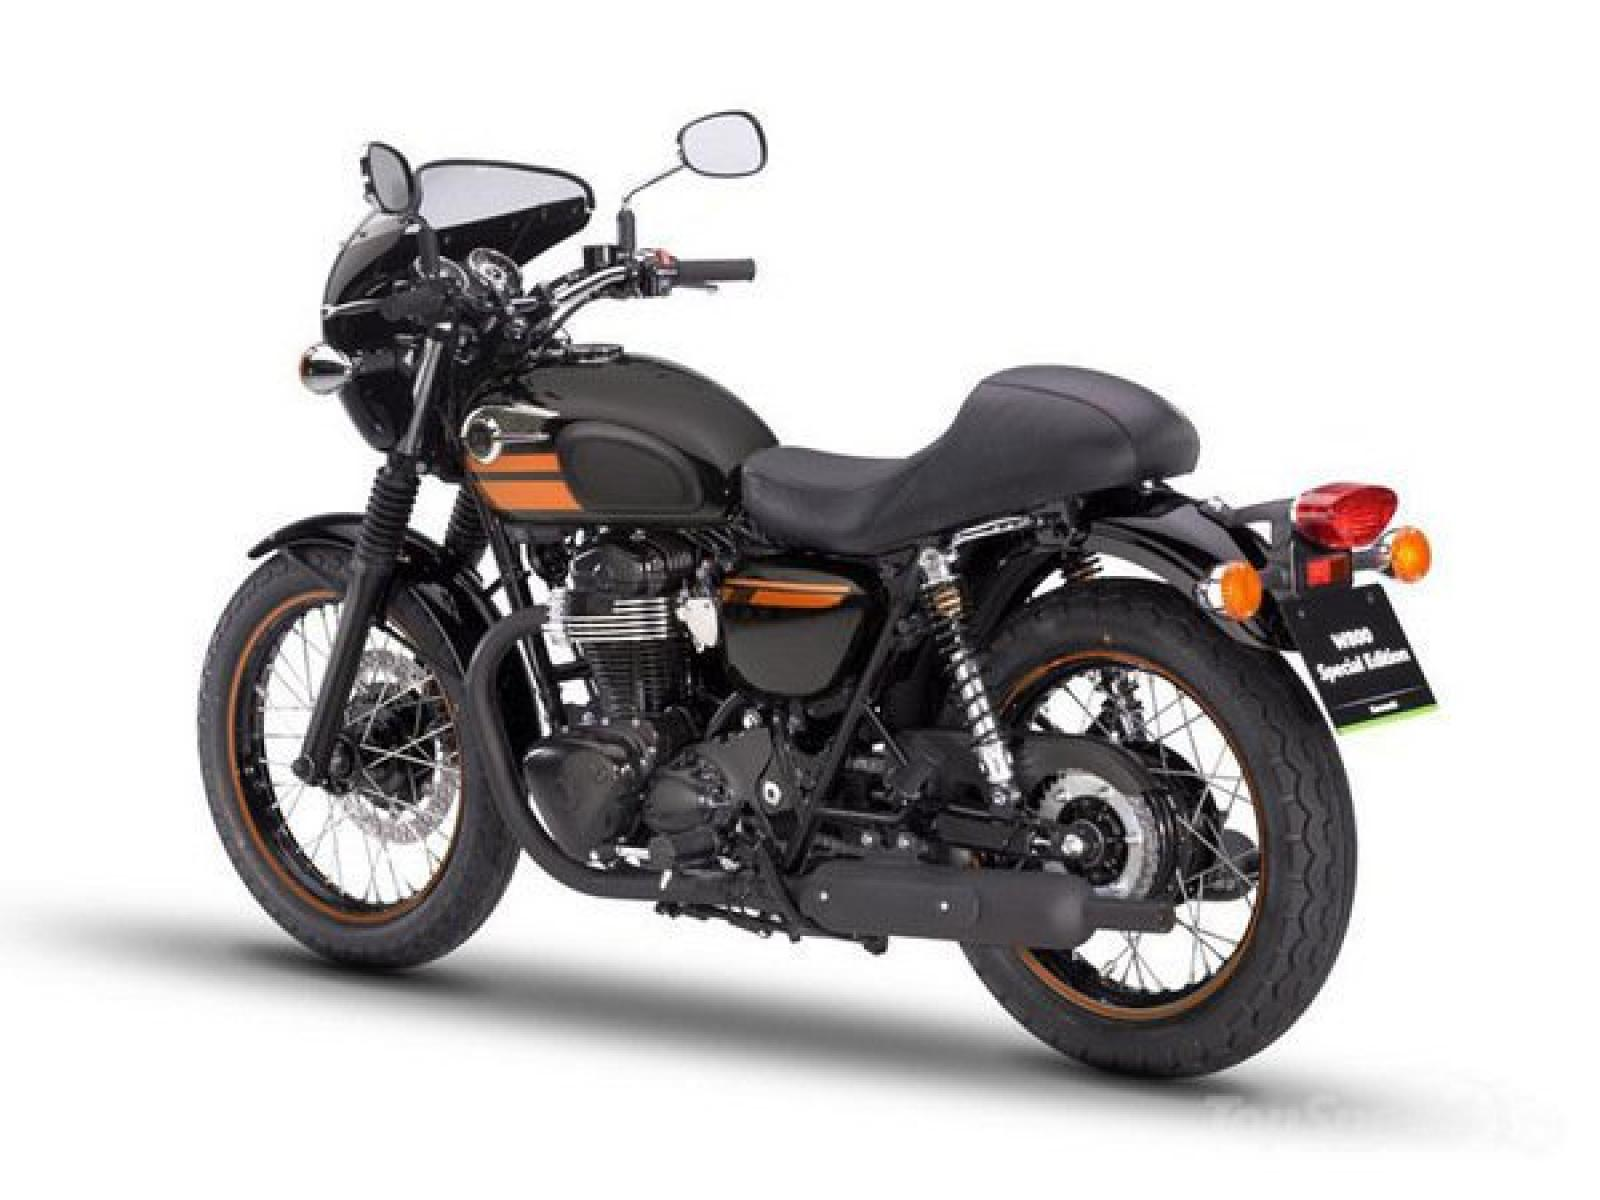 2014 kawasaki w800 special edition moto zombdrive com. Black Bedroom Furniture Sets. Home Design Ideas